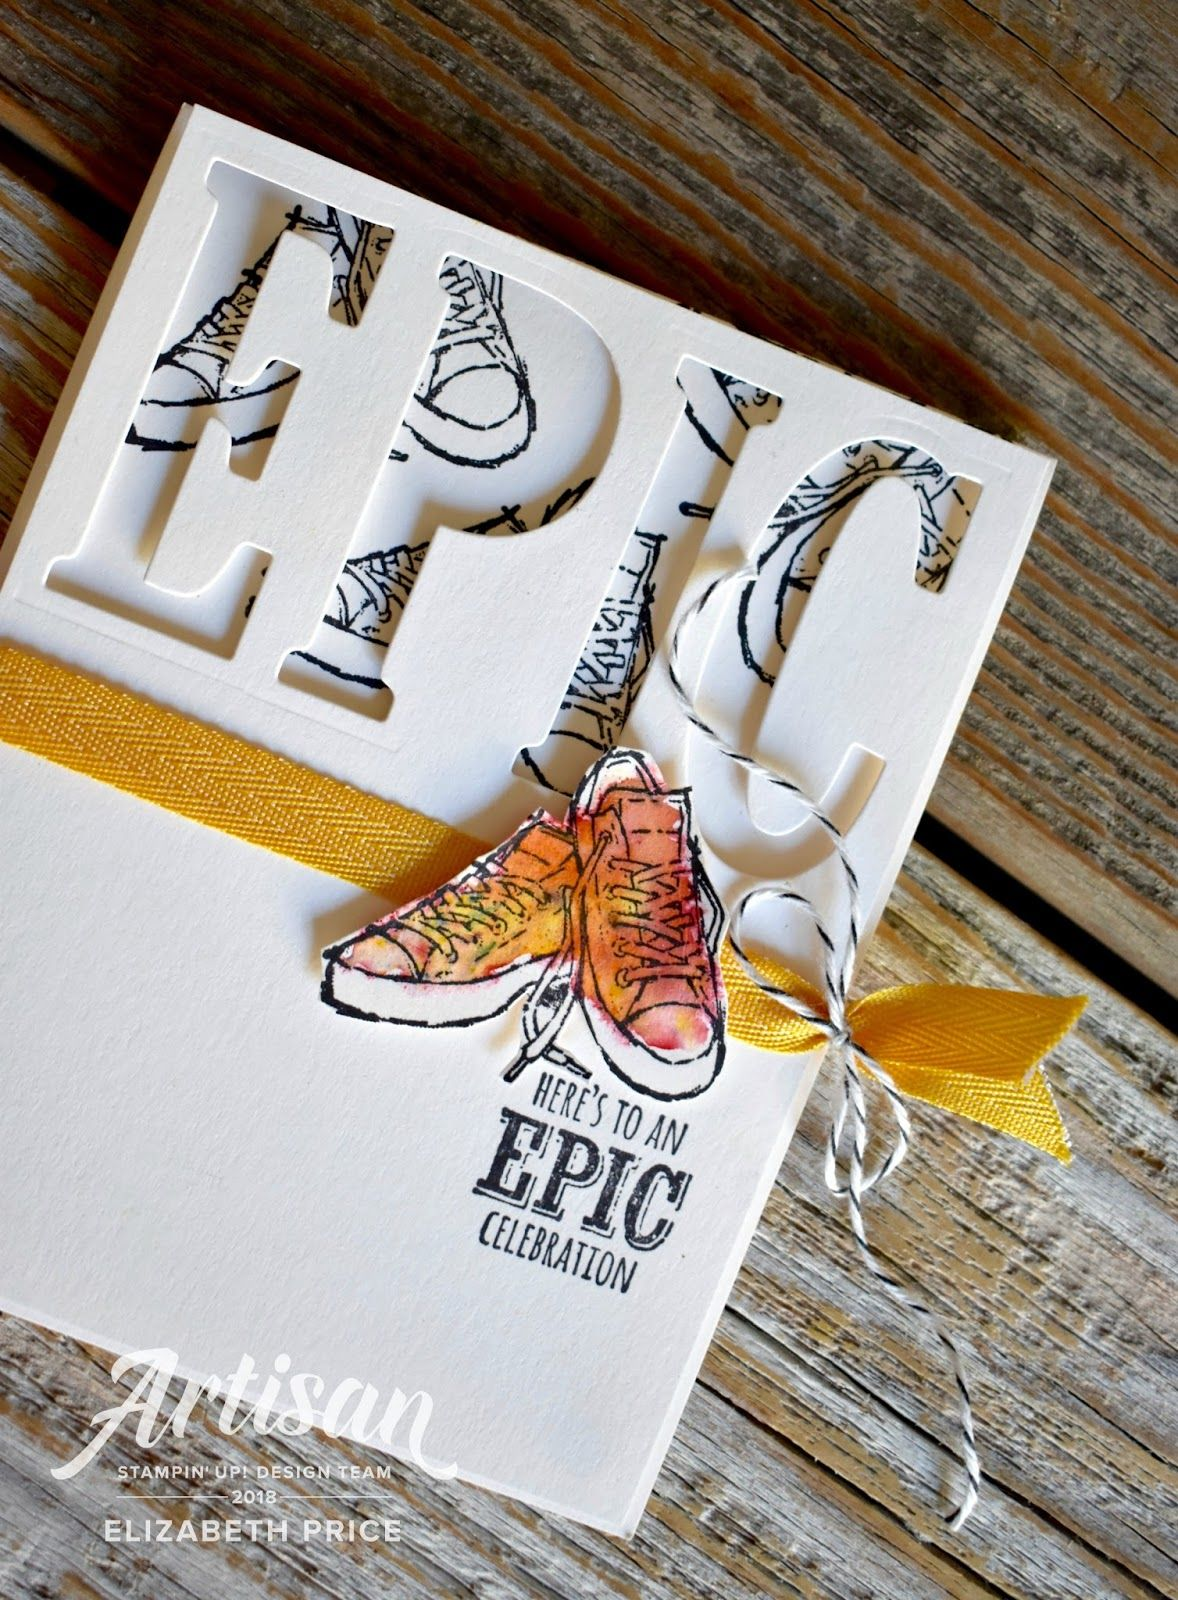 Epic celebration stampinu up artisan blog hop card ideas pazzle